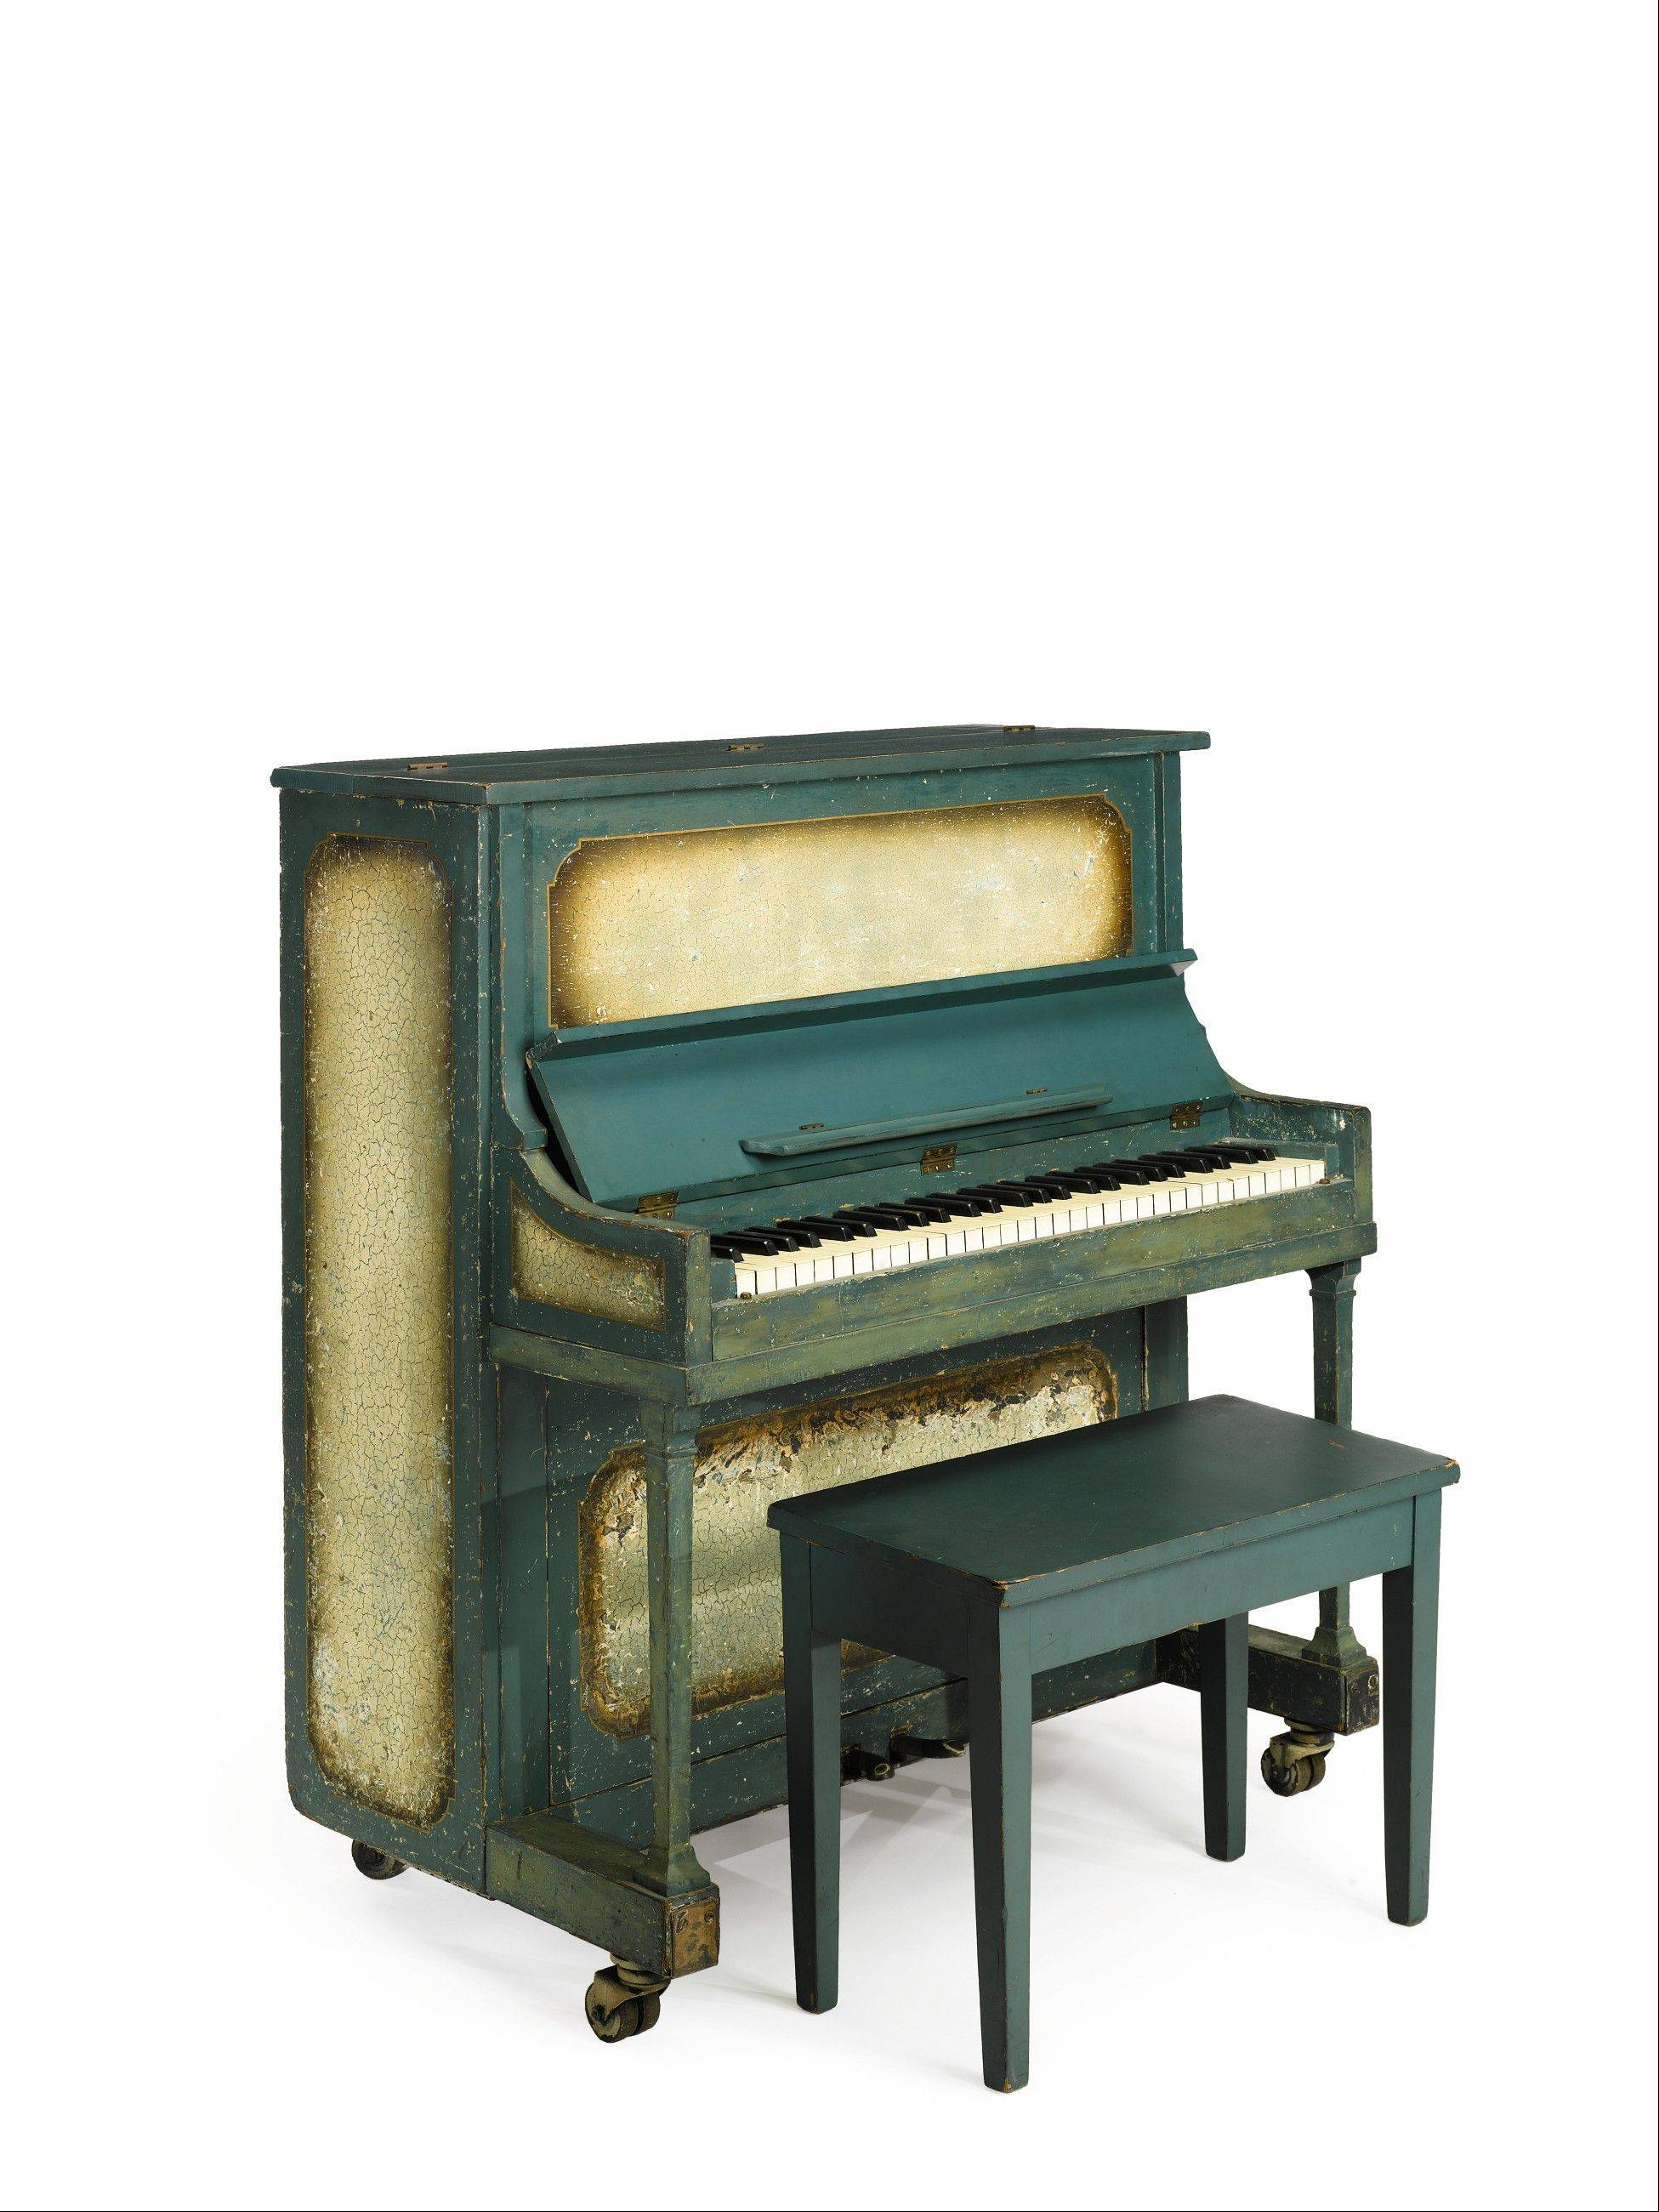 "The piano used in the movie ""Casablanca"" is going up for sale at Sotheby's in New York on Dec. 14, 2012. The auction house estimates it could fetch up to $1.2 million."